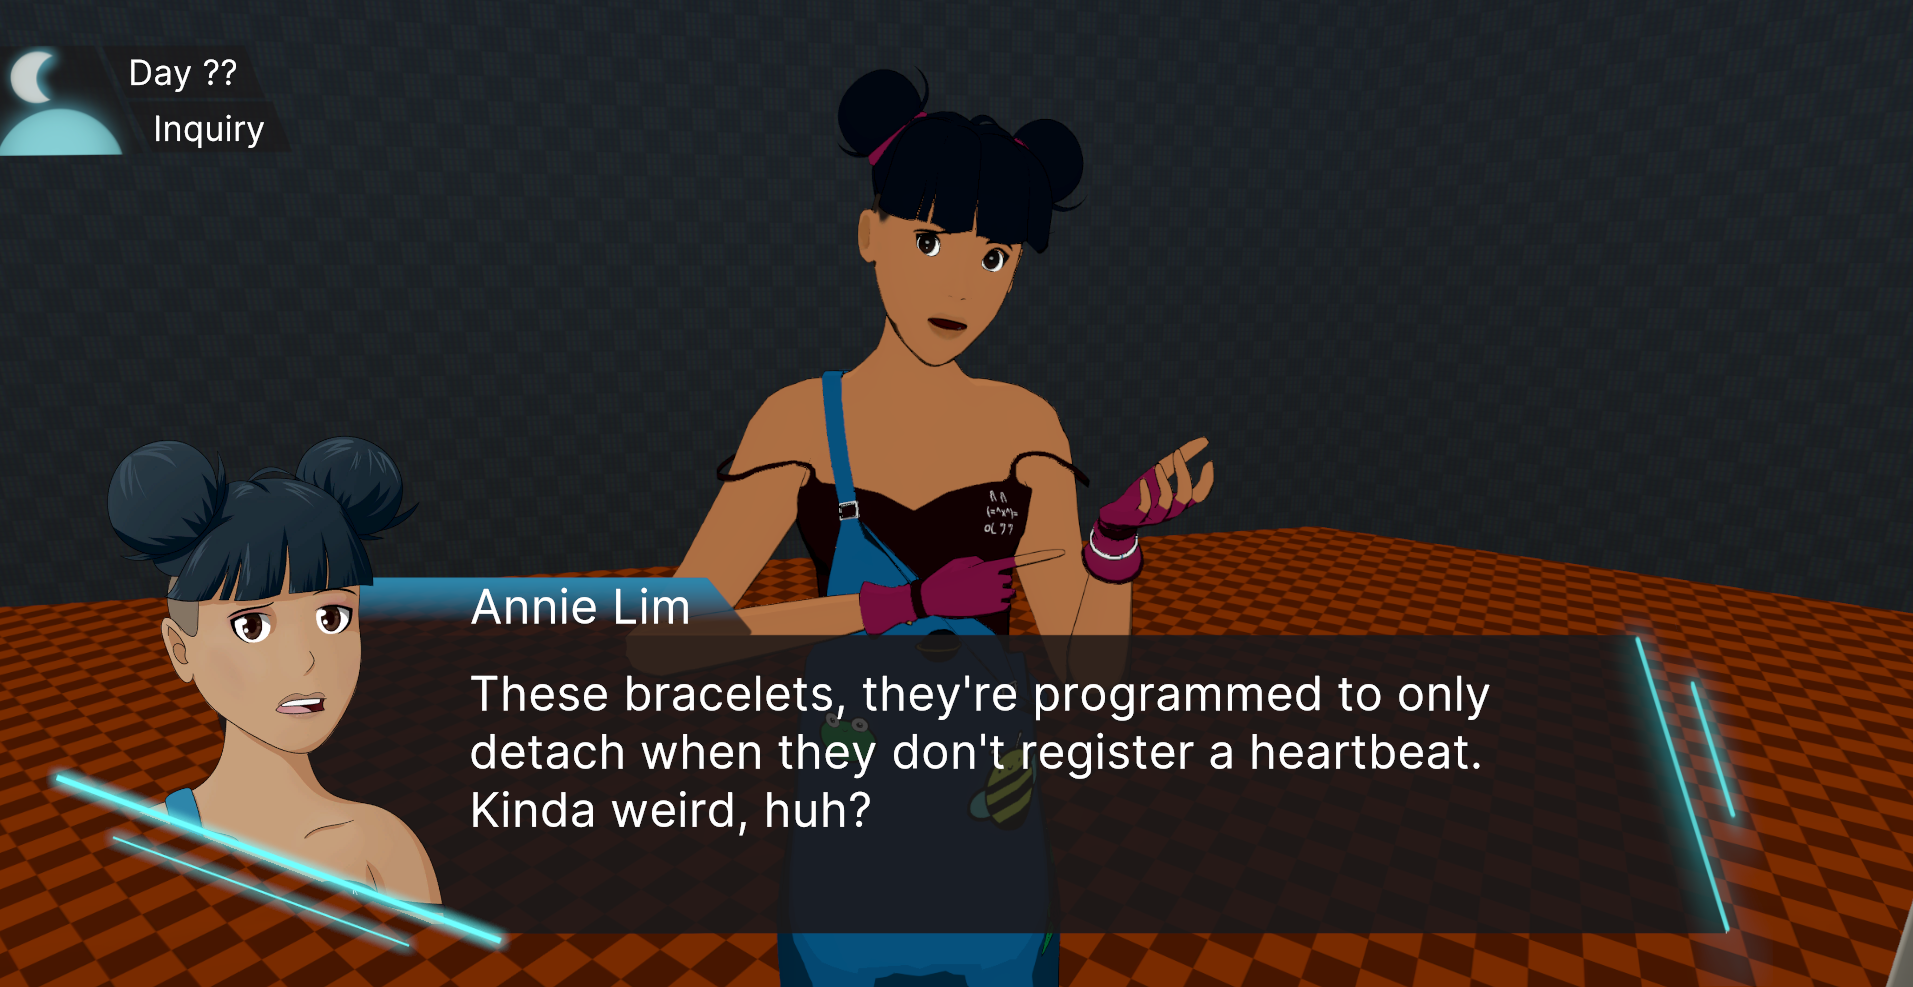 """A screenshot of Annie's 3D model in-game with a VN overlay. Her model and sprite look skeptical and she is showing off a bracelet on her wrist whilst saying """"These bracelets, they're programmed to only detach when they don't register a heartbeat. Kinda weird, huh?"""""""